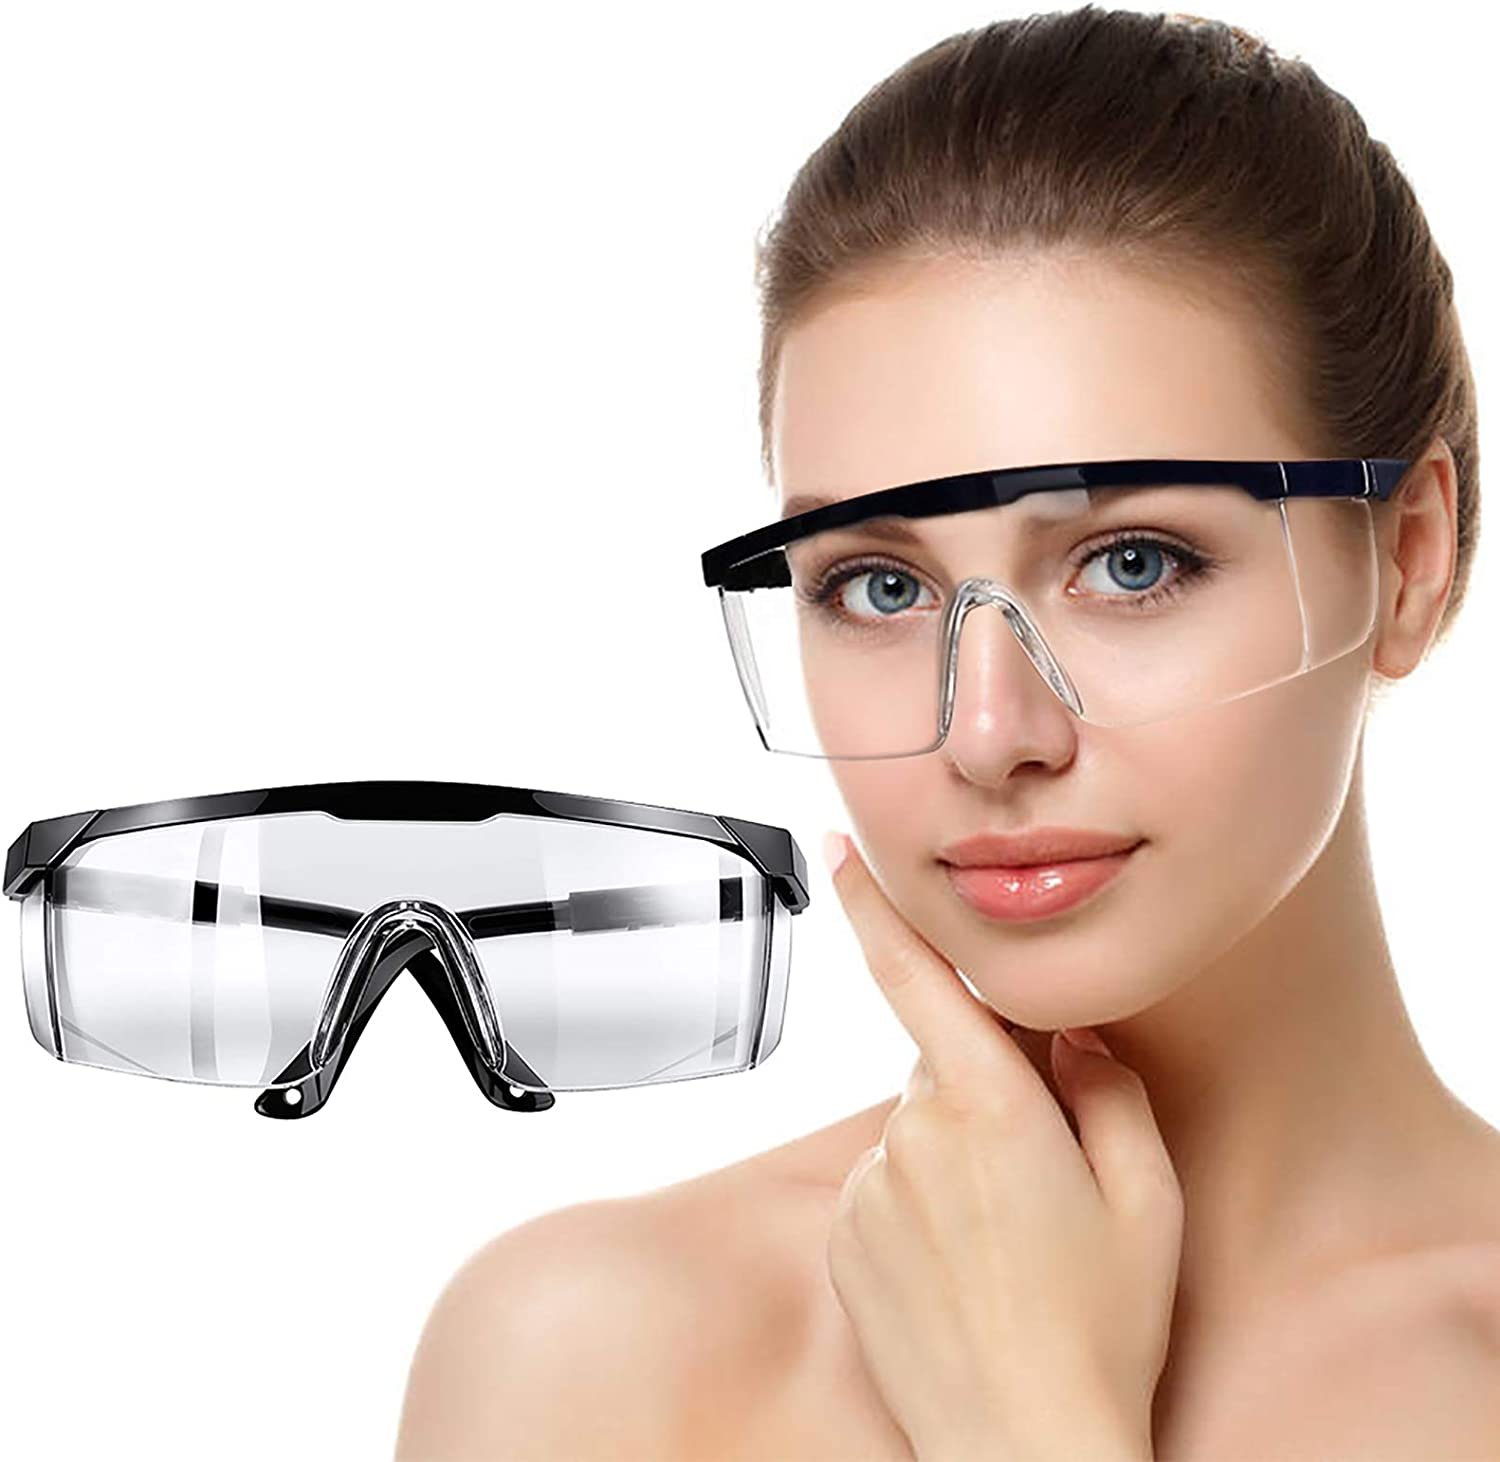 Lightweight Dustproof 3 Pcs Safety Goggles Anti-Fog Eye Protection Glasses,Over